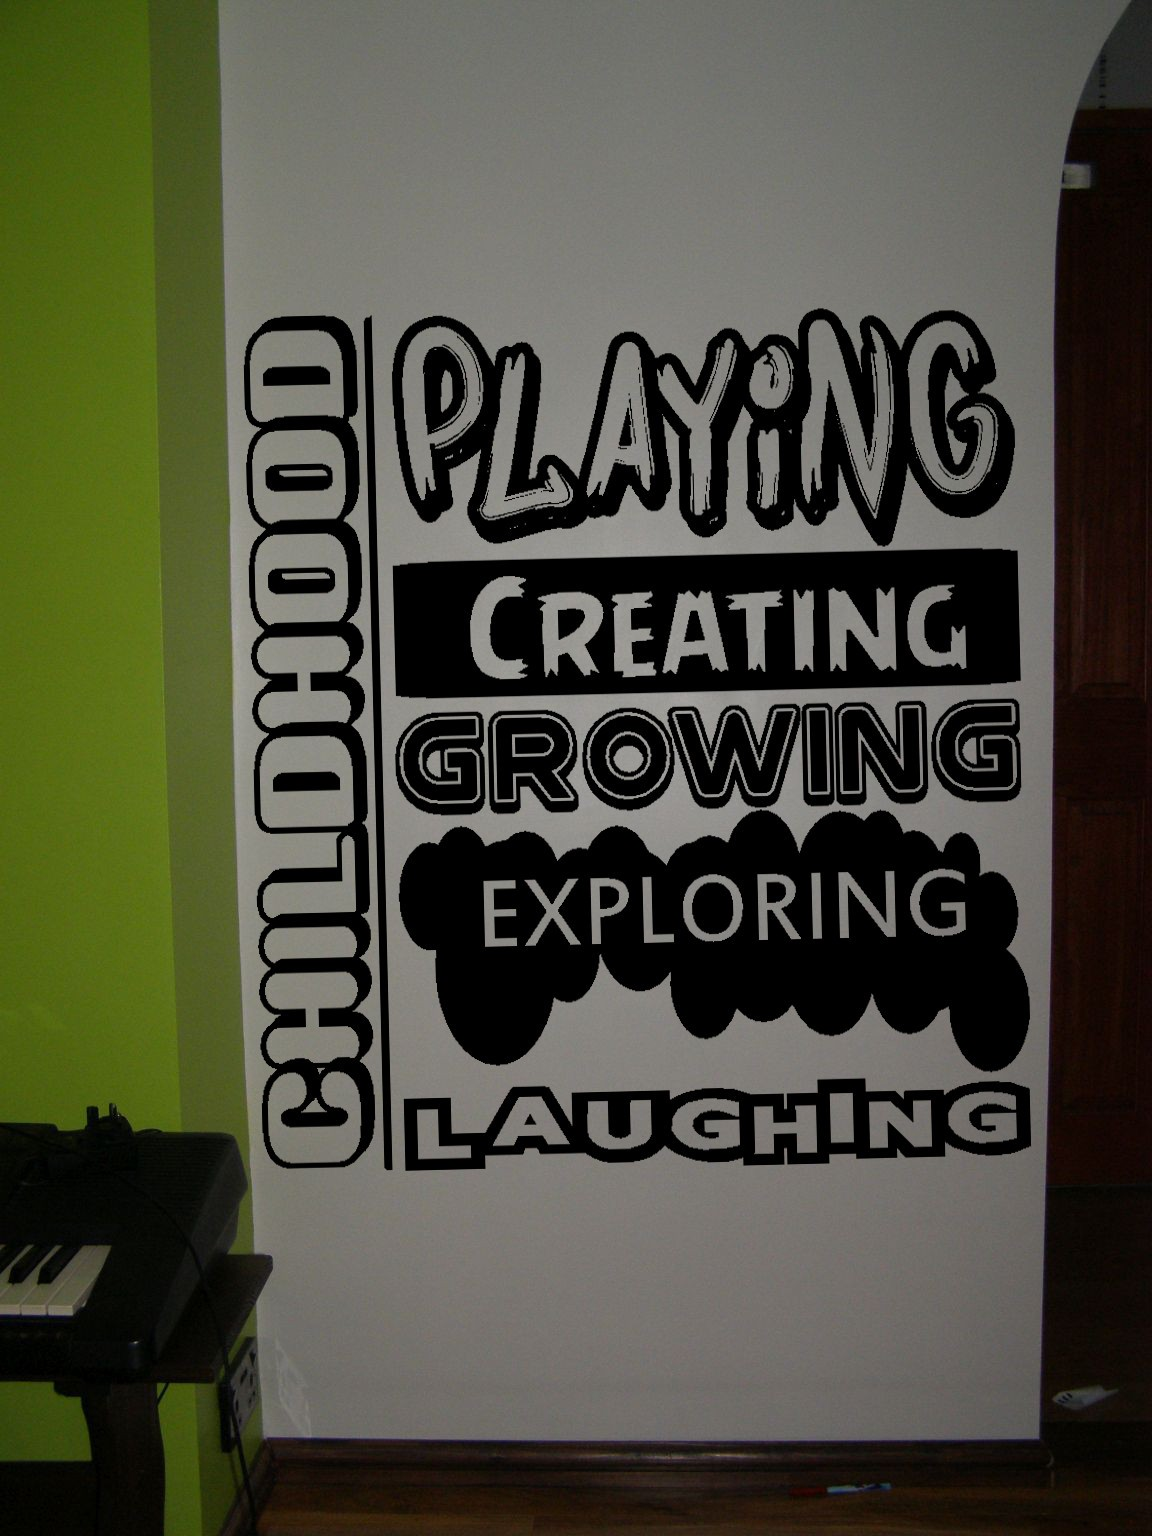 kids bedroom rules decorative bedroom wall art sticker wall decal